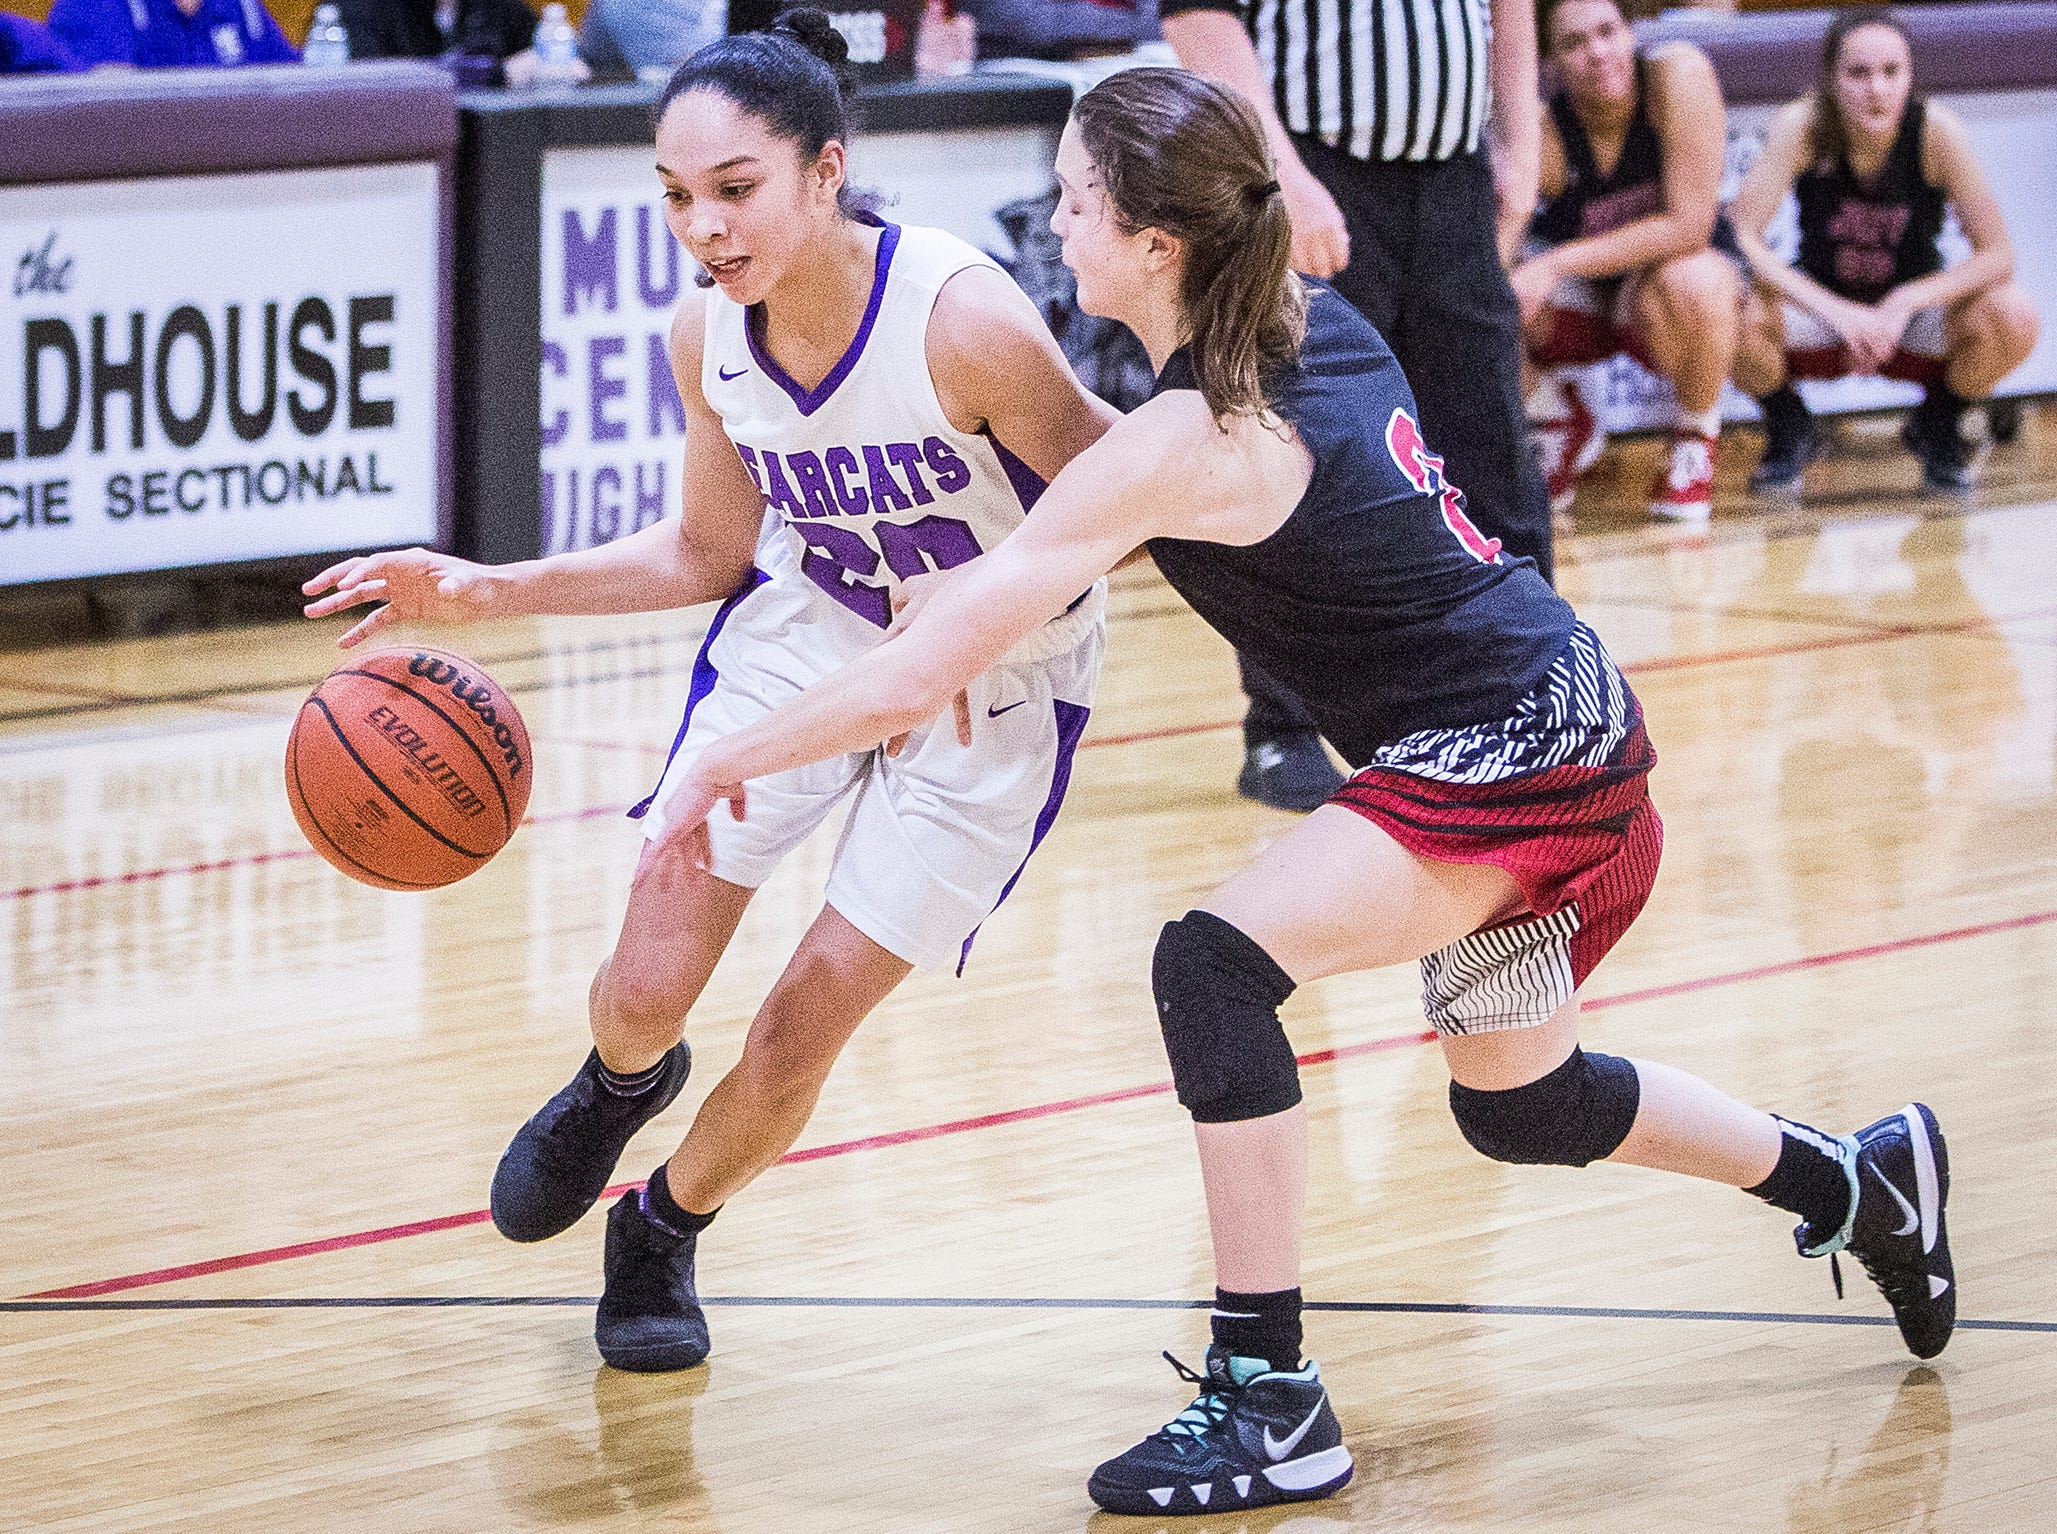 Central's Sayla McIntosh dribbles past Lafayette Jefferson during their game at Central Friday, Jan. 4, 2019.